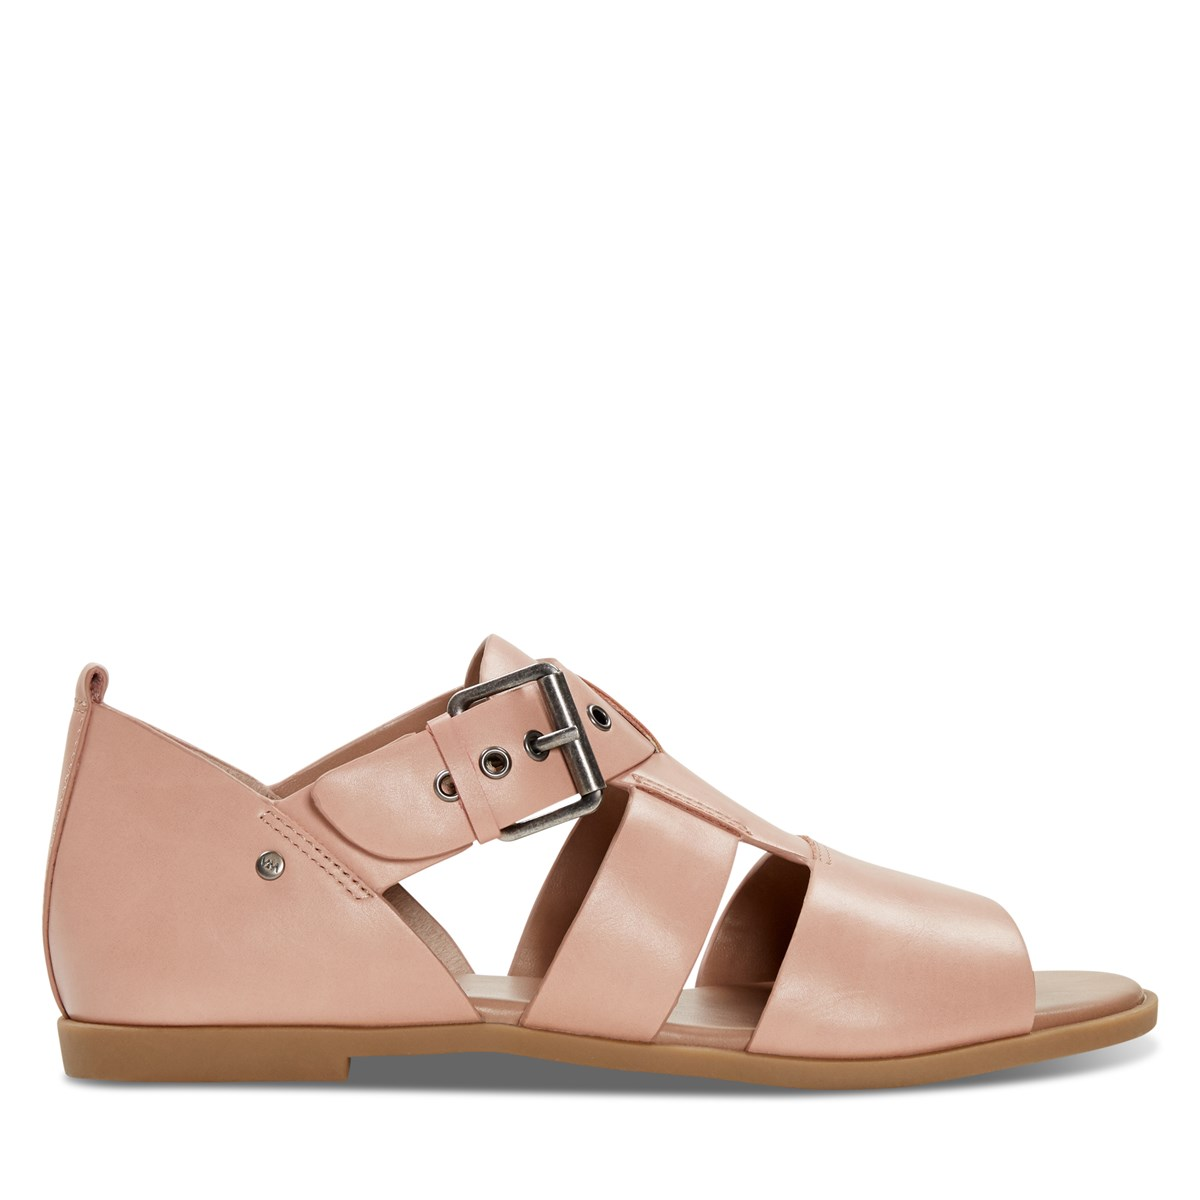 Women's Eboni Sandals in Pink